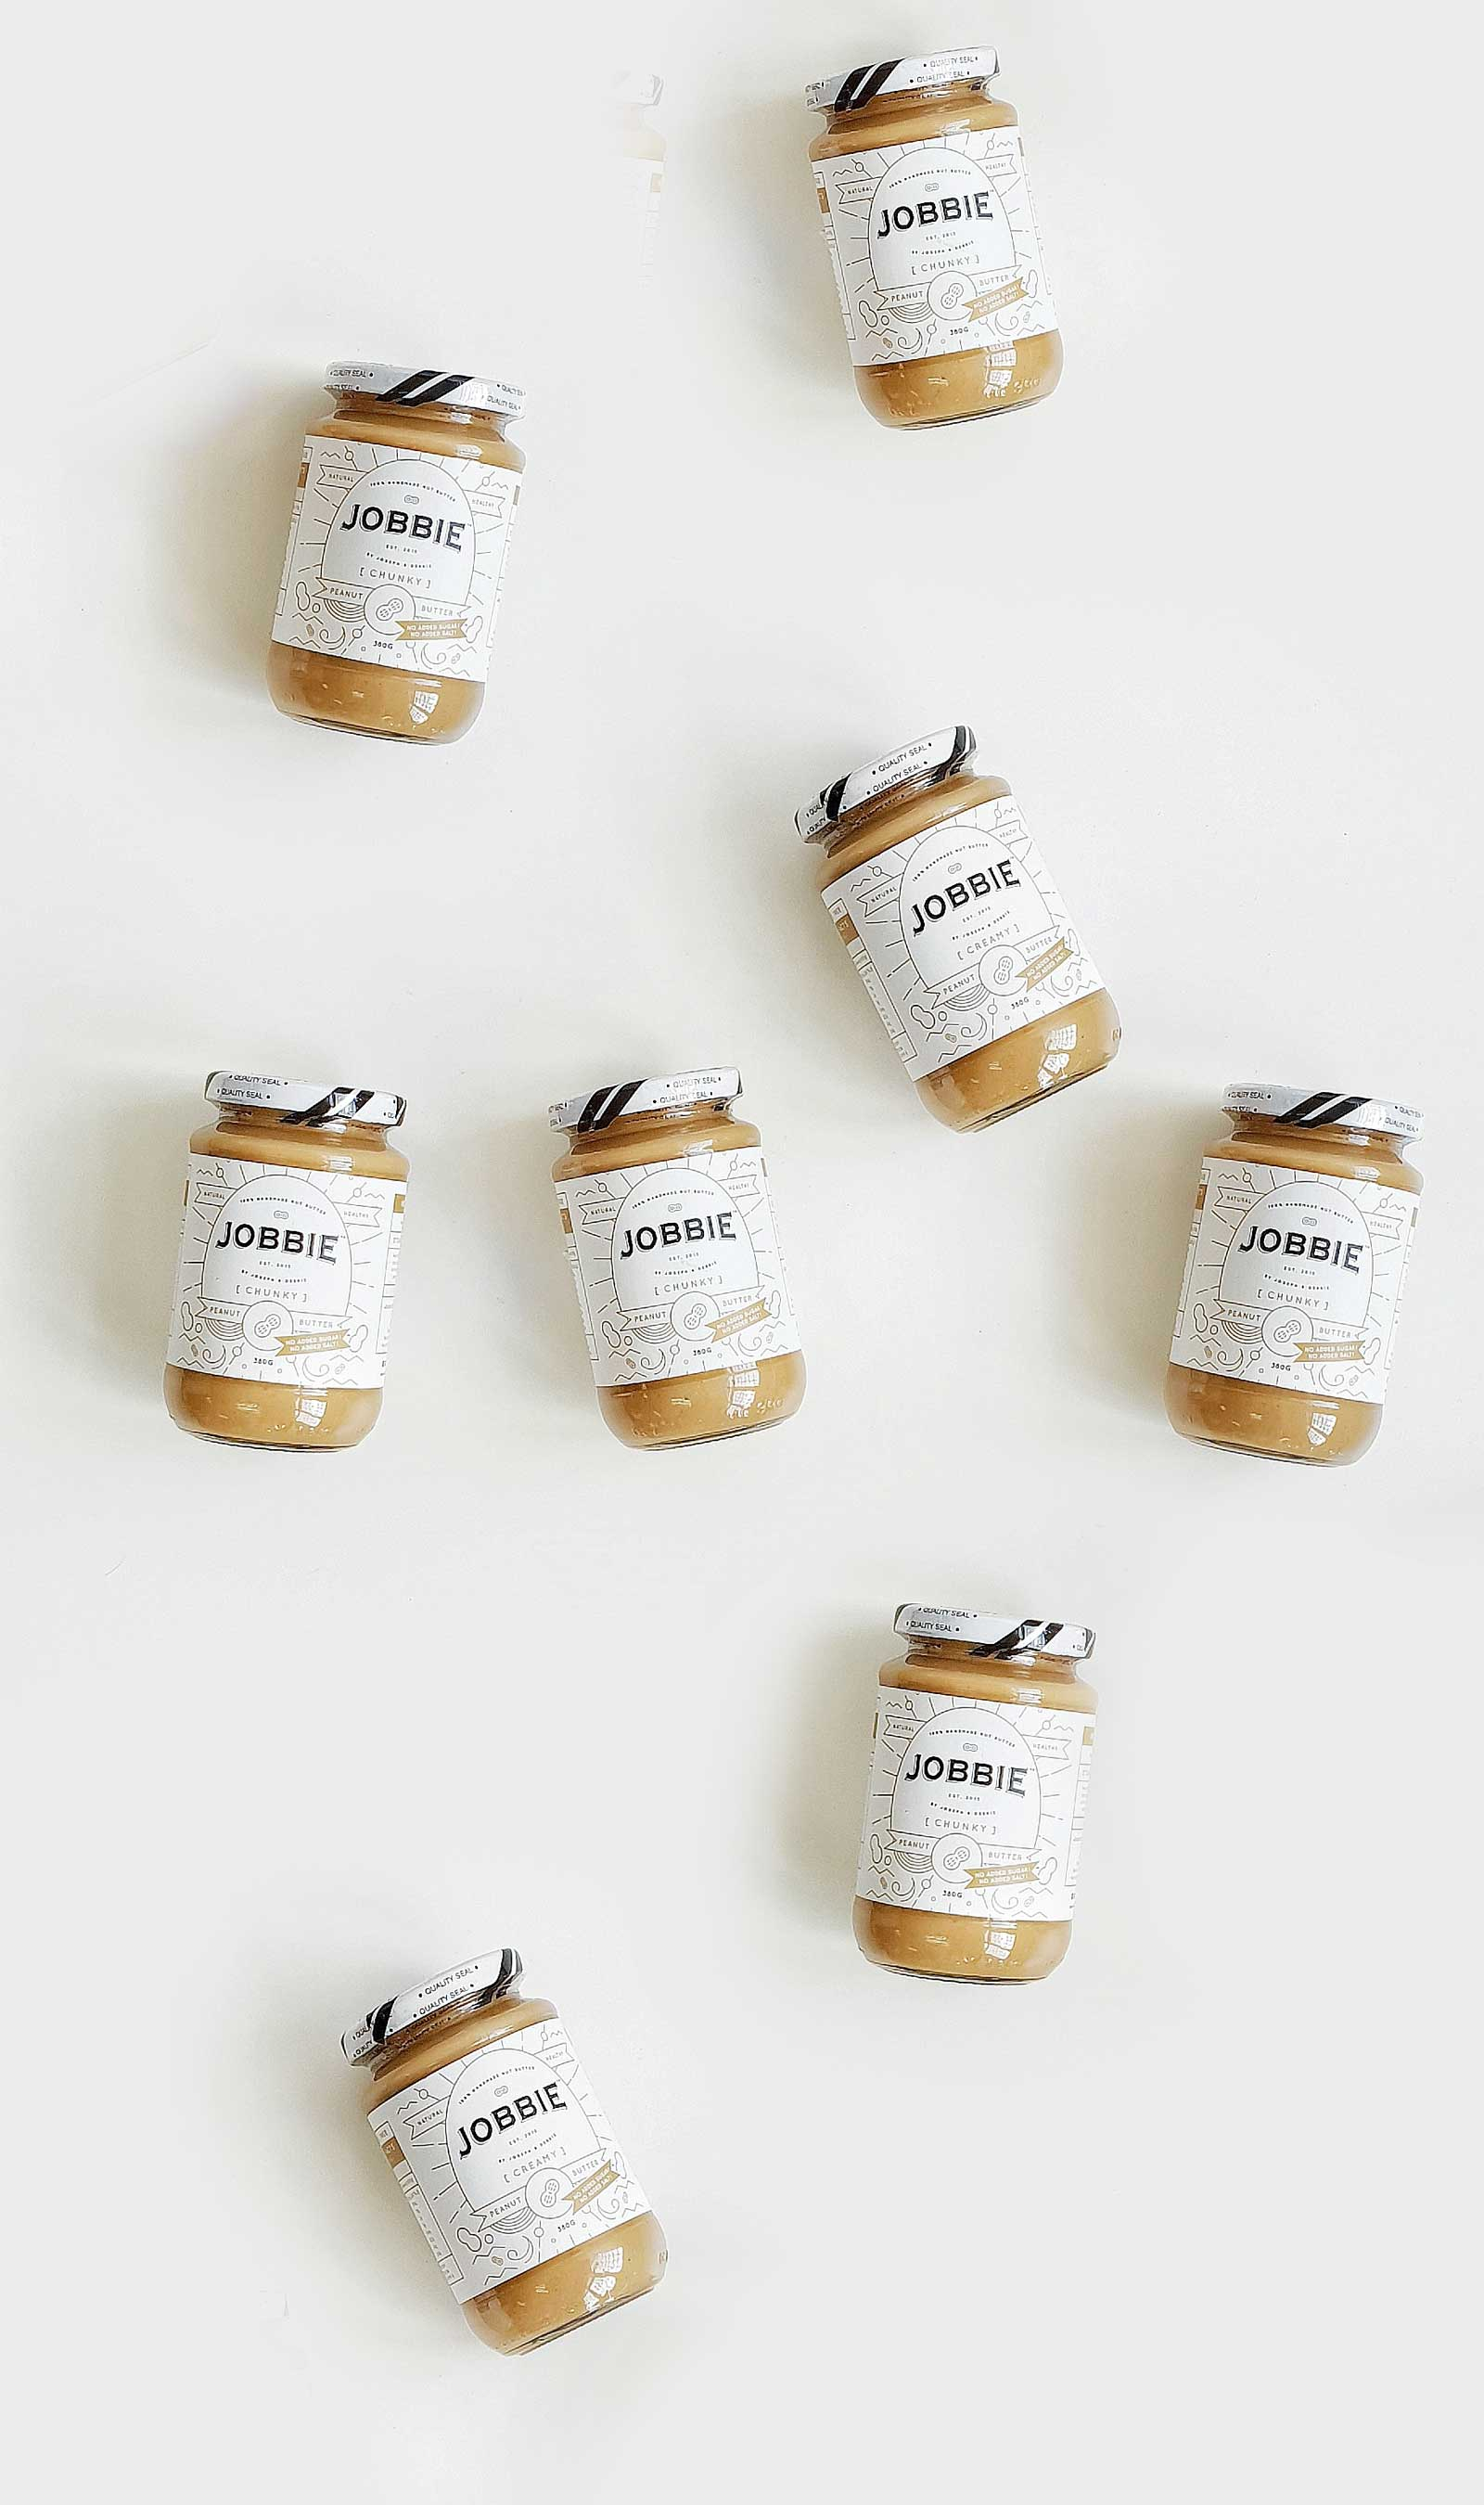 JOBBIE NUT BUTTER - Get natural peanut butter delivered to your doorstep | FREE SHIPPING